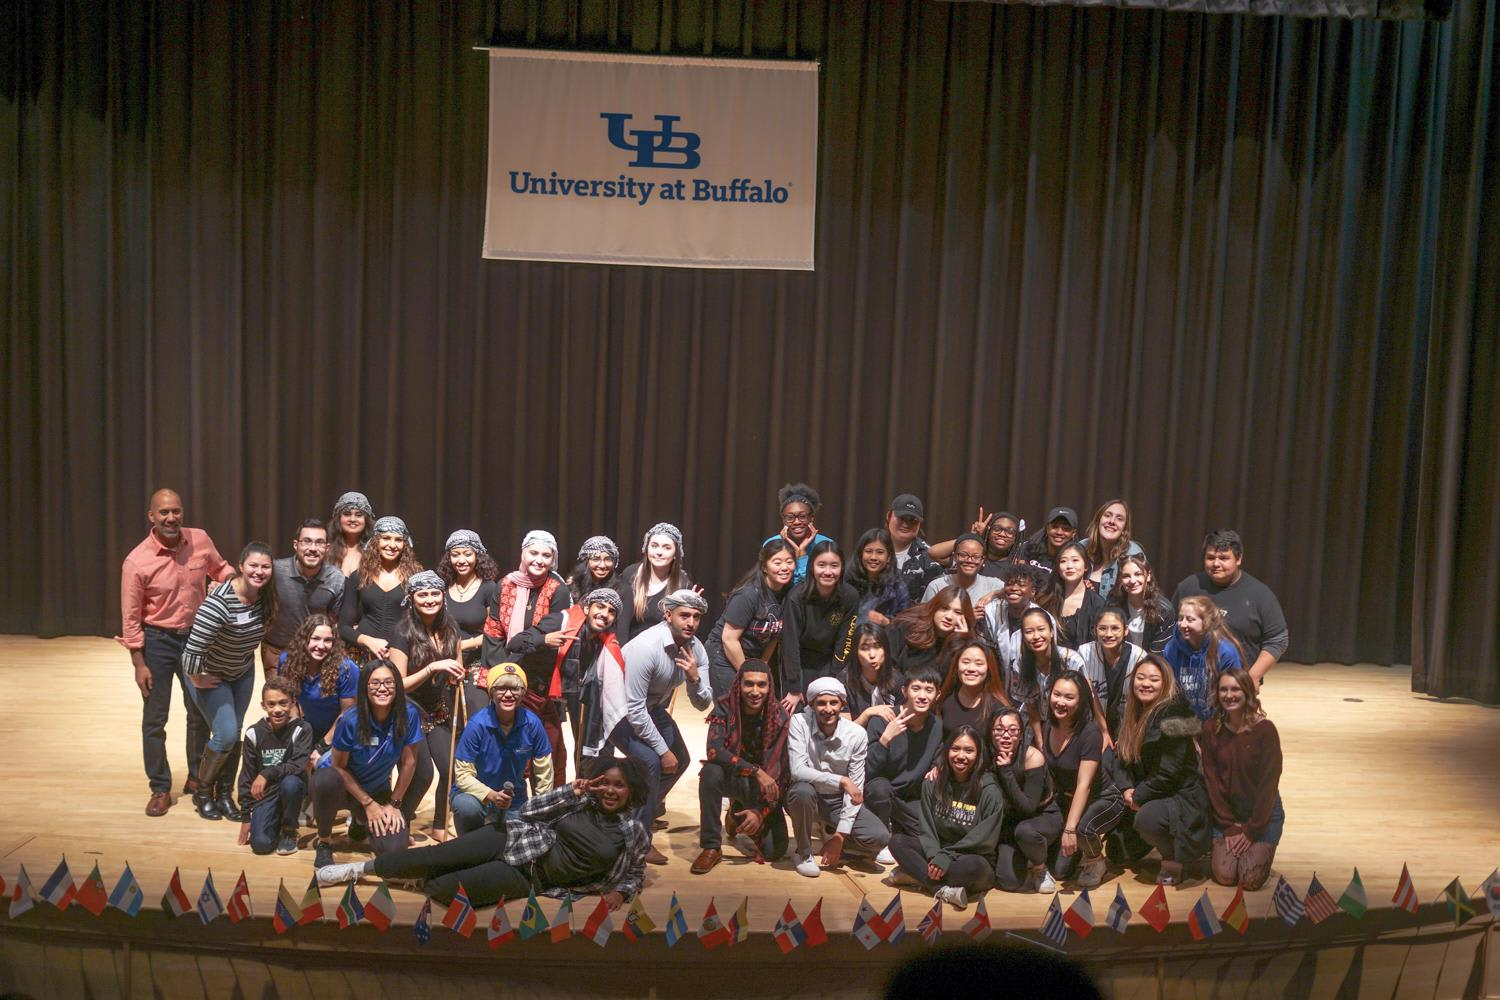 Group Photo of the Residence Hall Association and all of the performers from the November 2019 Cultural Showcase program on the stage in the student union with a banner of the interlocking UB logo.